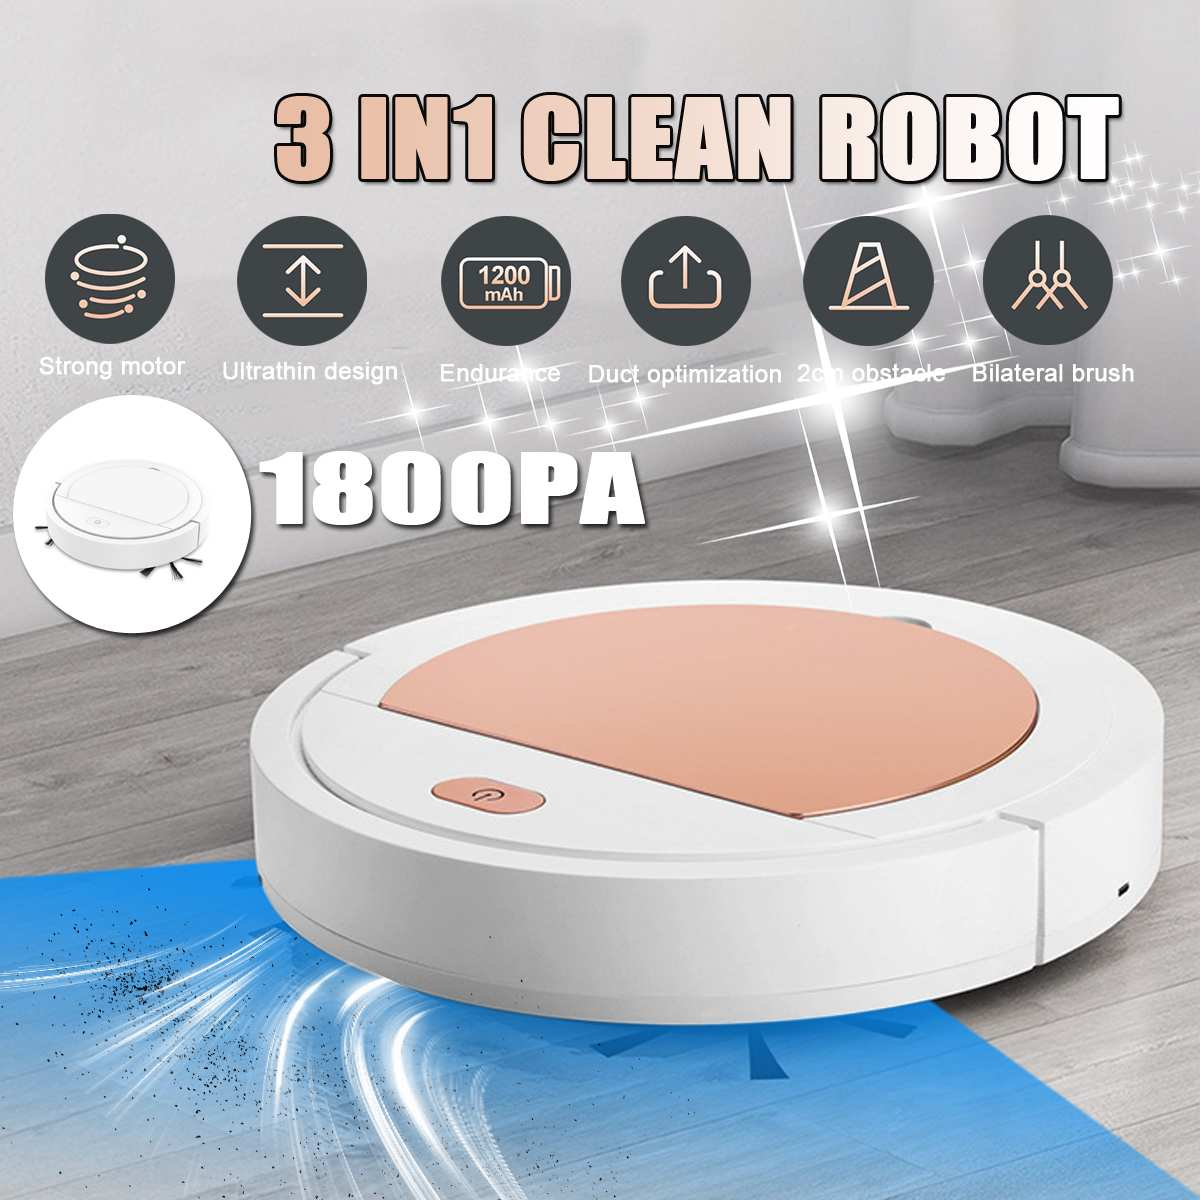 New 3 In 1 Smart Sweeper Robot House Durable Power Floor Cleaning Robots Vacuum Cleaner 1800pa